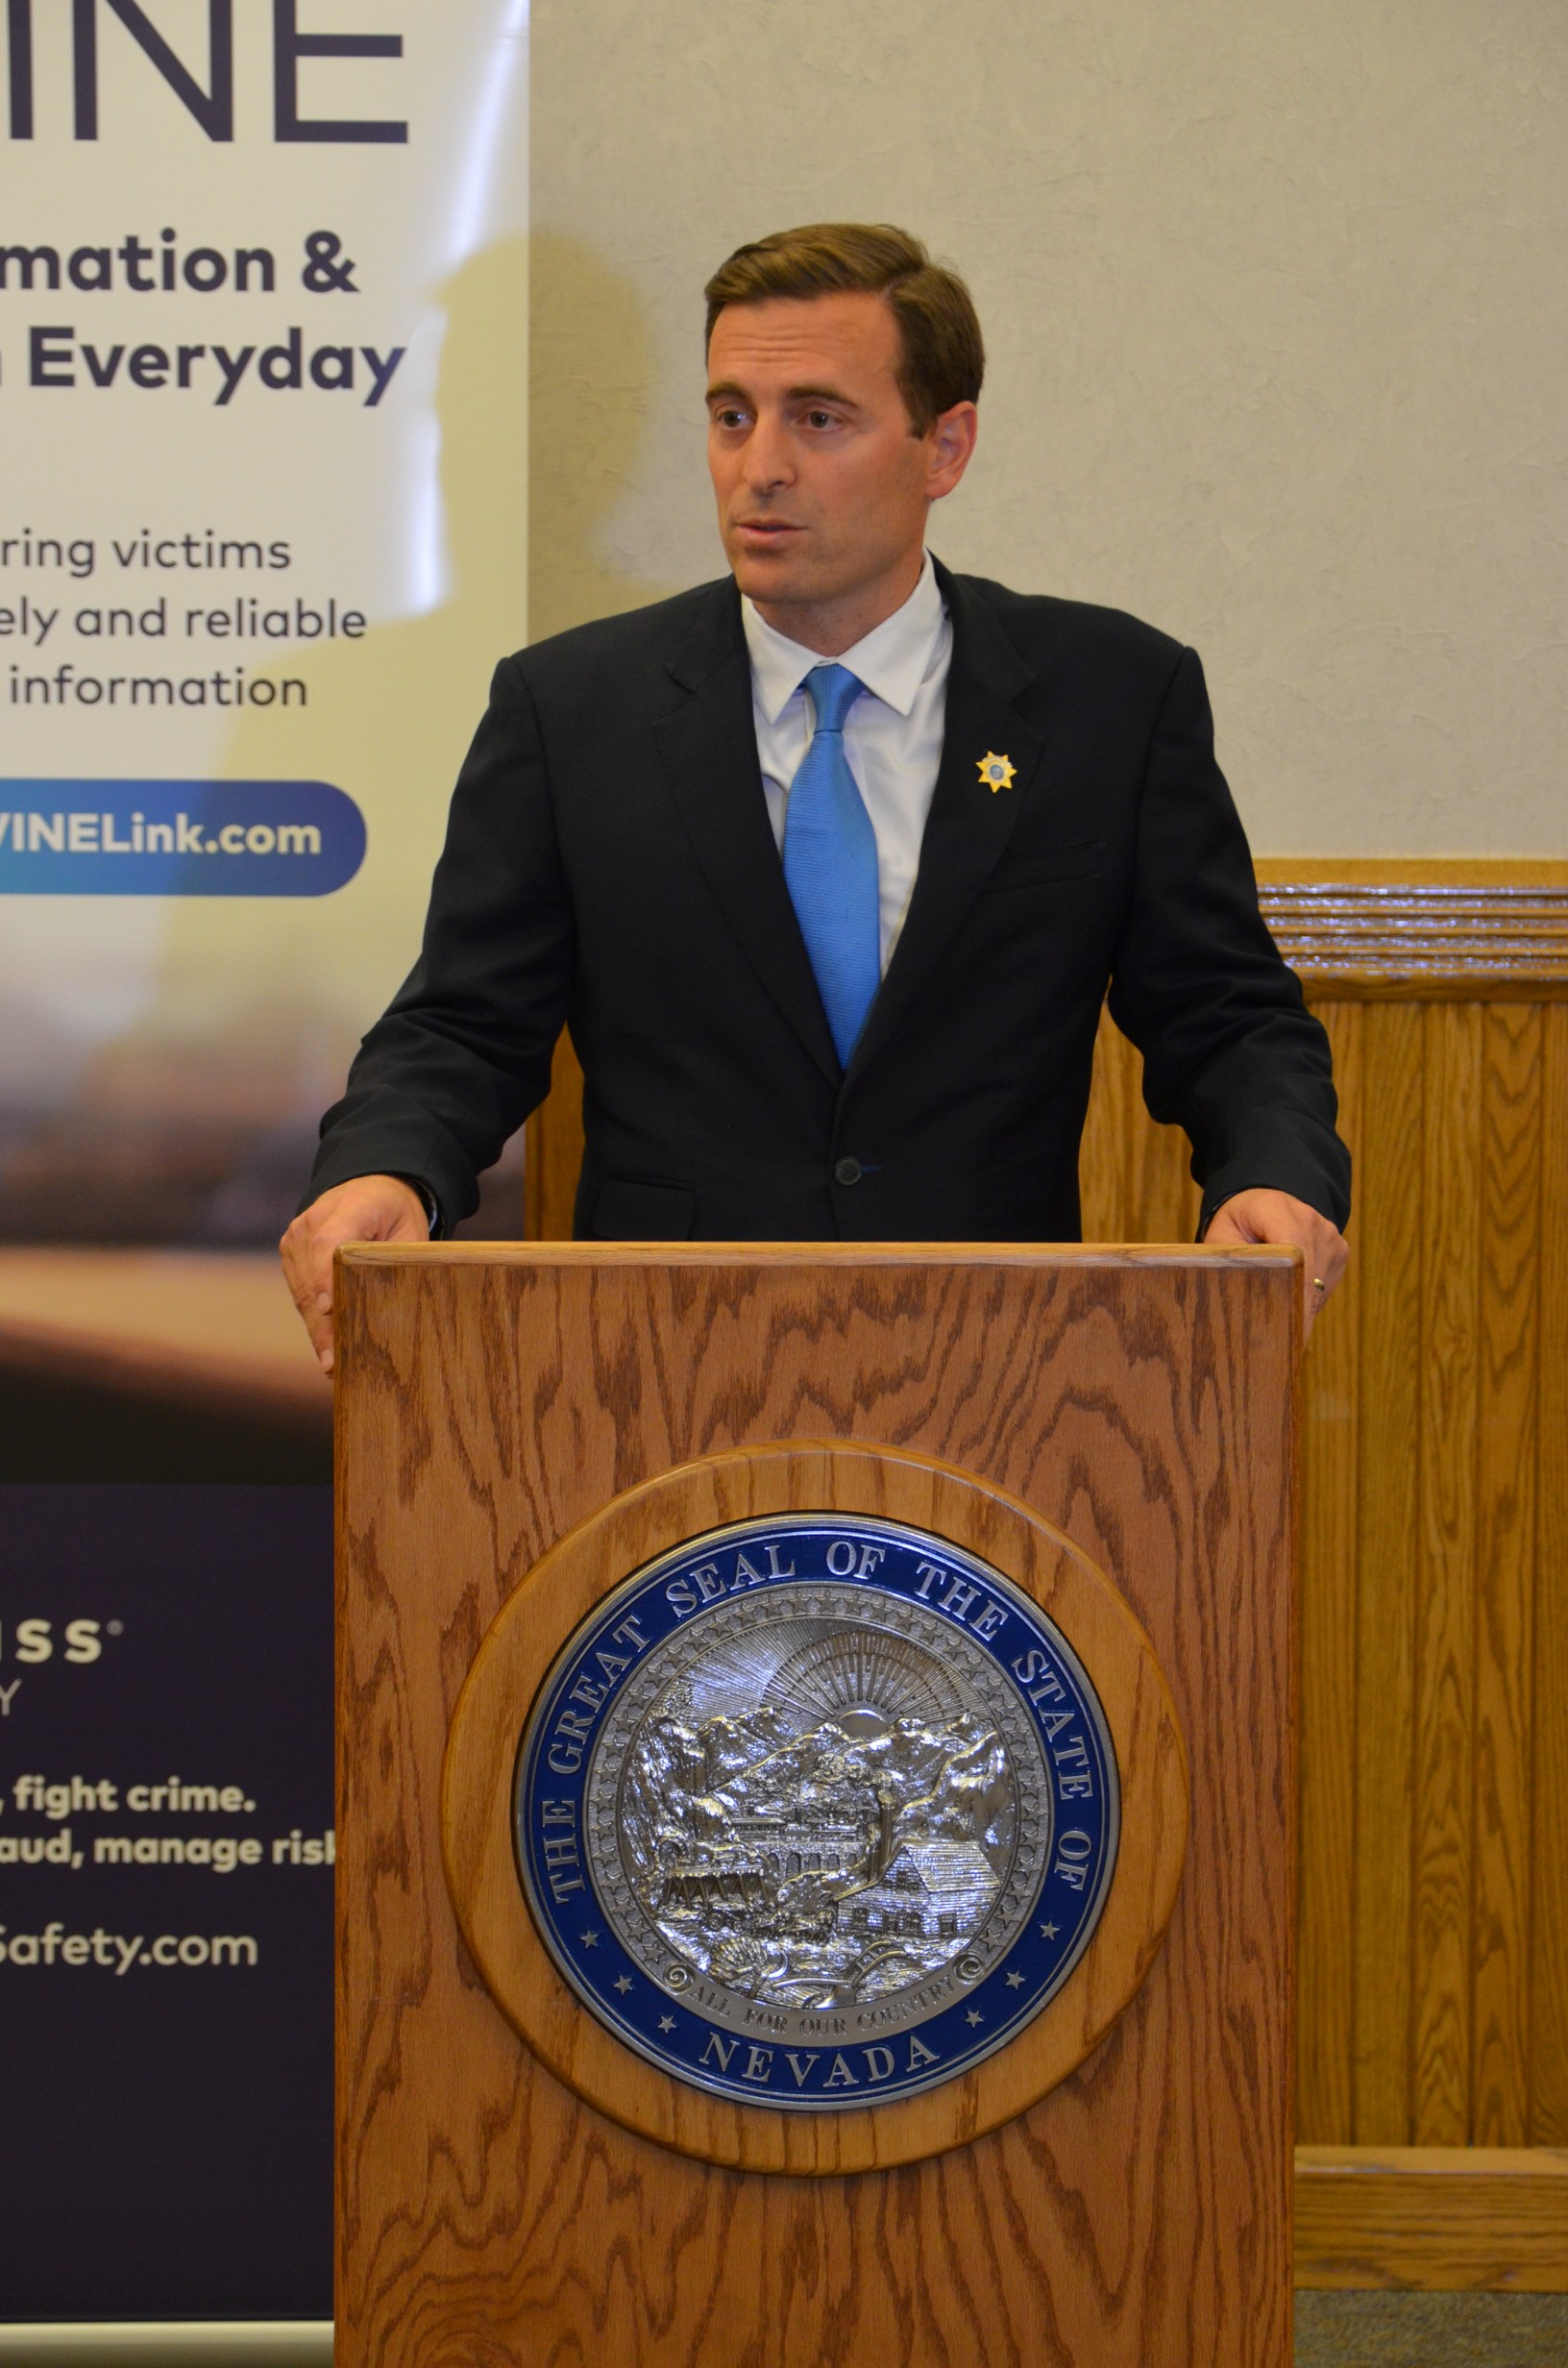 Nevada Attorney General Adam Laxalt speaks at the launch of an enhanced version of the state's victim notification network on Tuesday, July 11, 2017 (Photo courtesy office of Adam Laxalt)